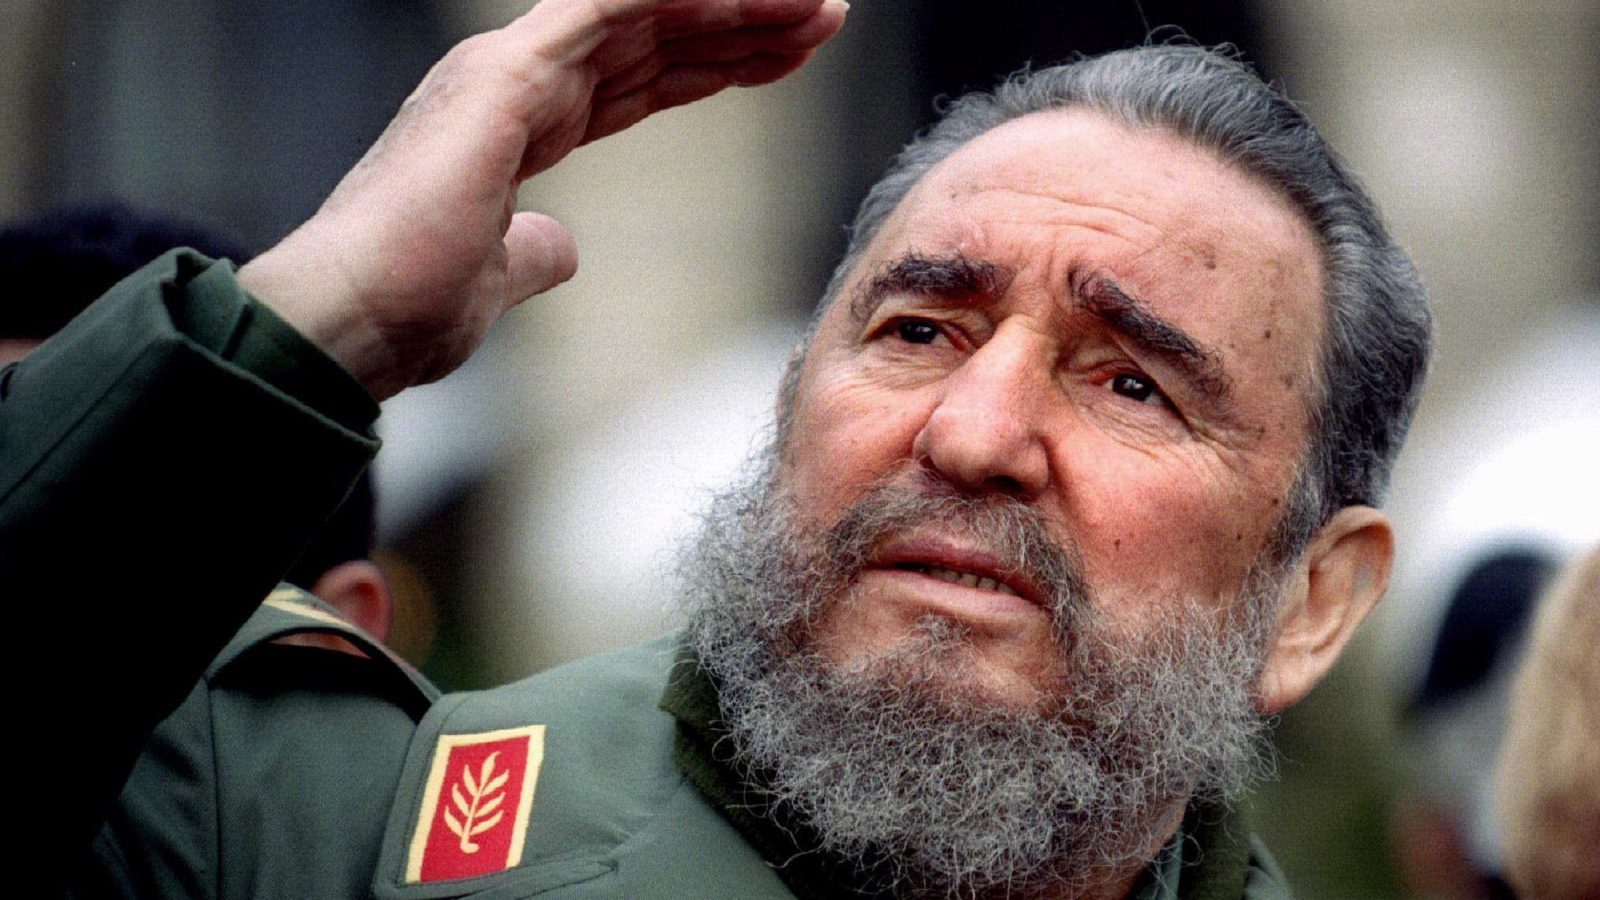 Cuba's President Fidel Castro gestures during a tour of Paris in this March 15, 1995 file photo. Ailing Cuban leader Castro said on February 19, 2008 that he will not return to lead the country, retiring as head of state 49 years after he seized power in an armed revolution.  REUTERS/Charles Platiau/Files (FRANCE) - RTR1XA8X